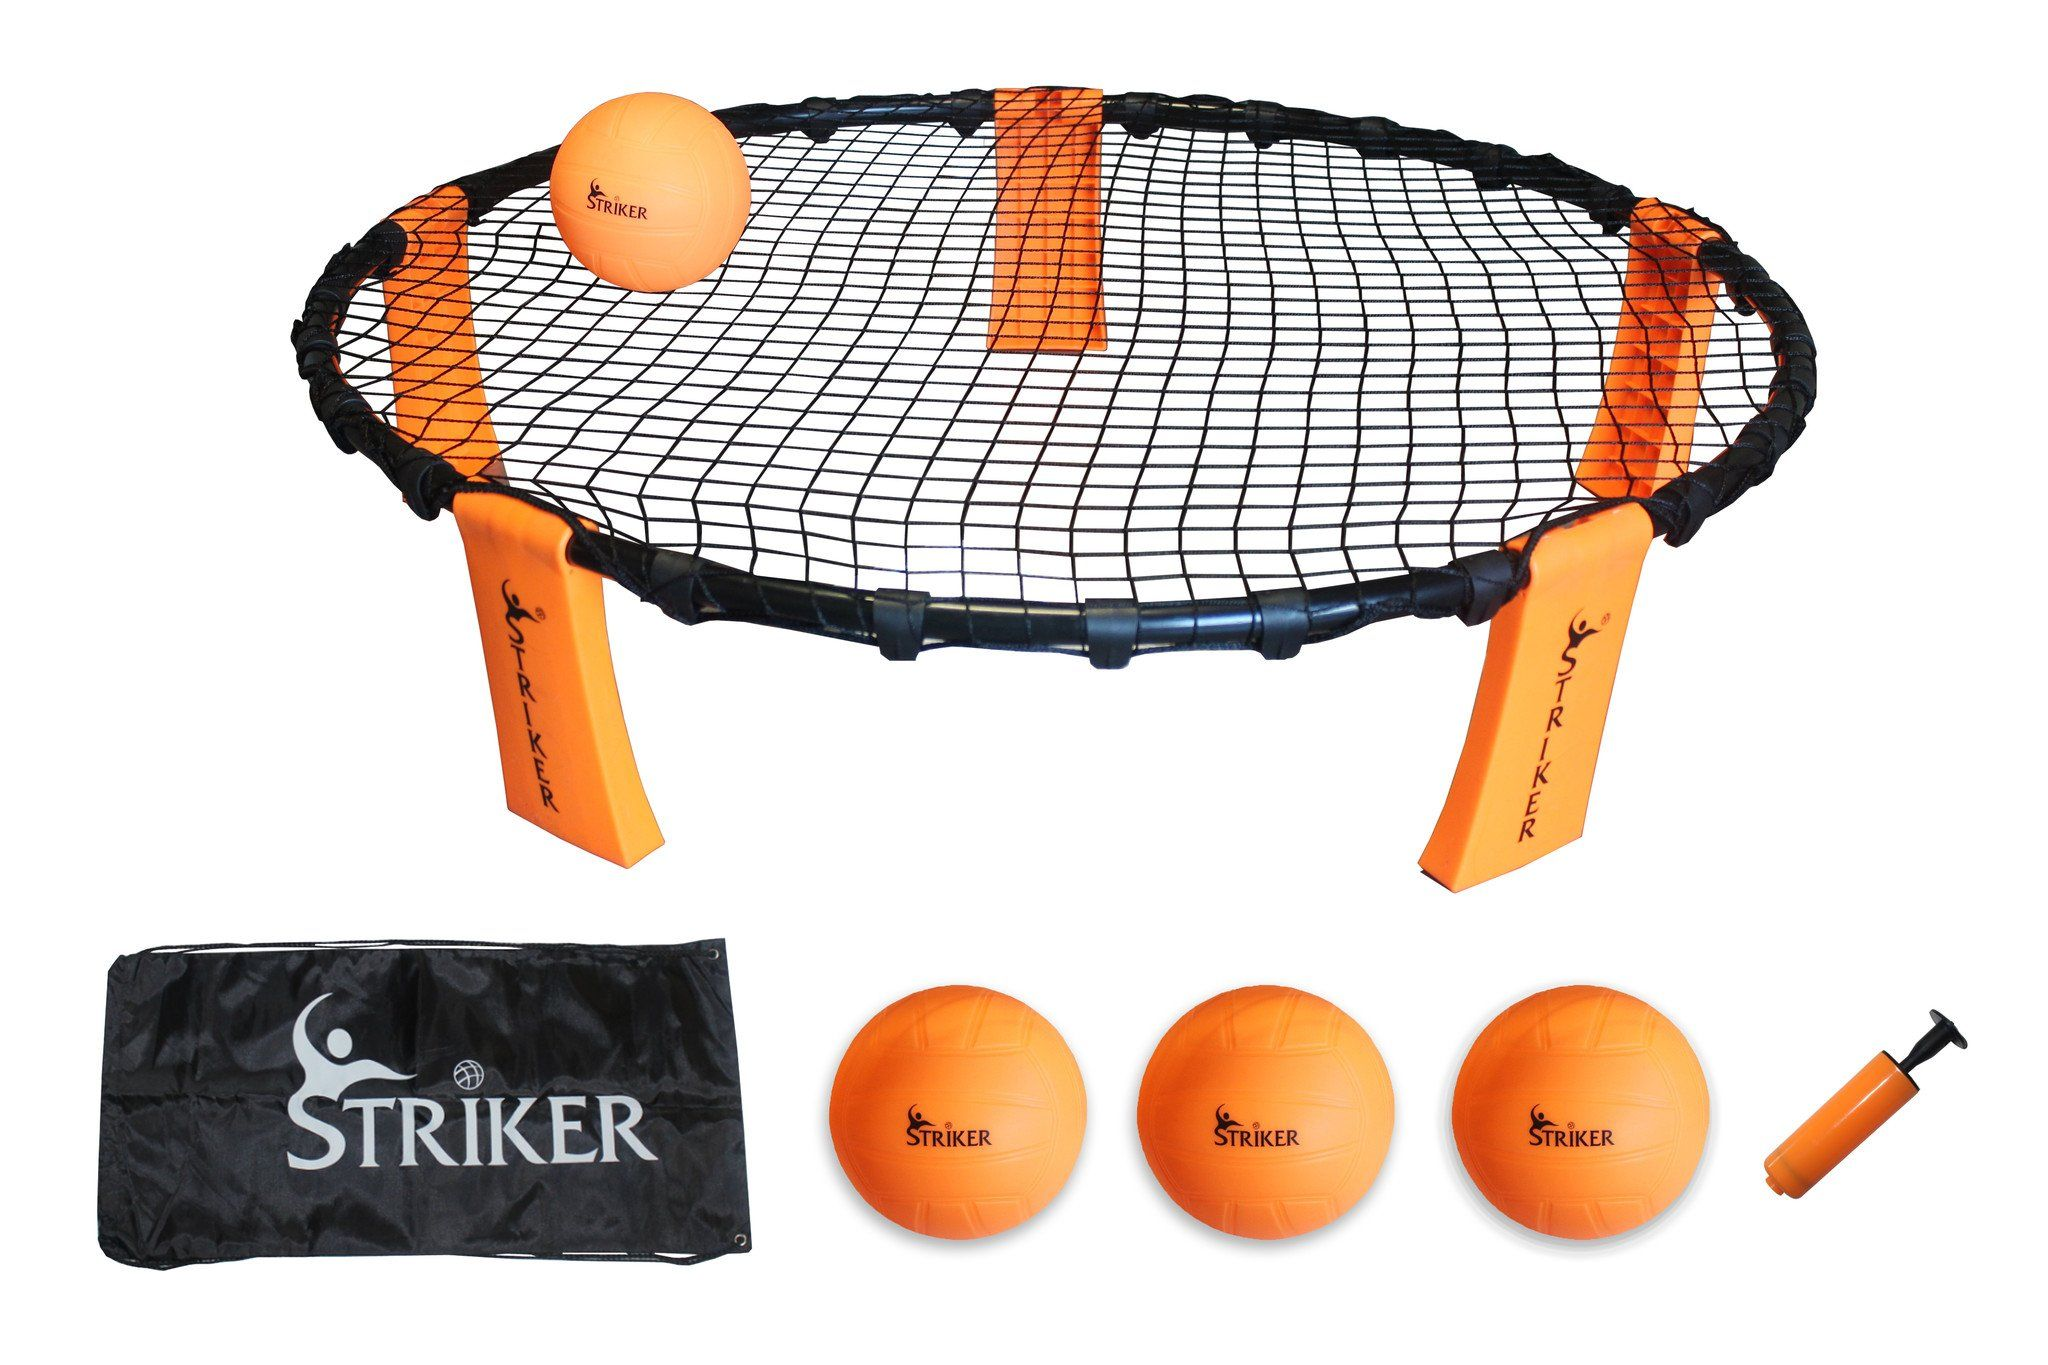 Striker Includes Target 3 Balls Carrying Bag Pump Manual Exciting Fast Paced Outdoor Lawn Game Portable Perfect Fo Spike Game Lawn Games Kit Games